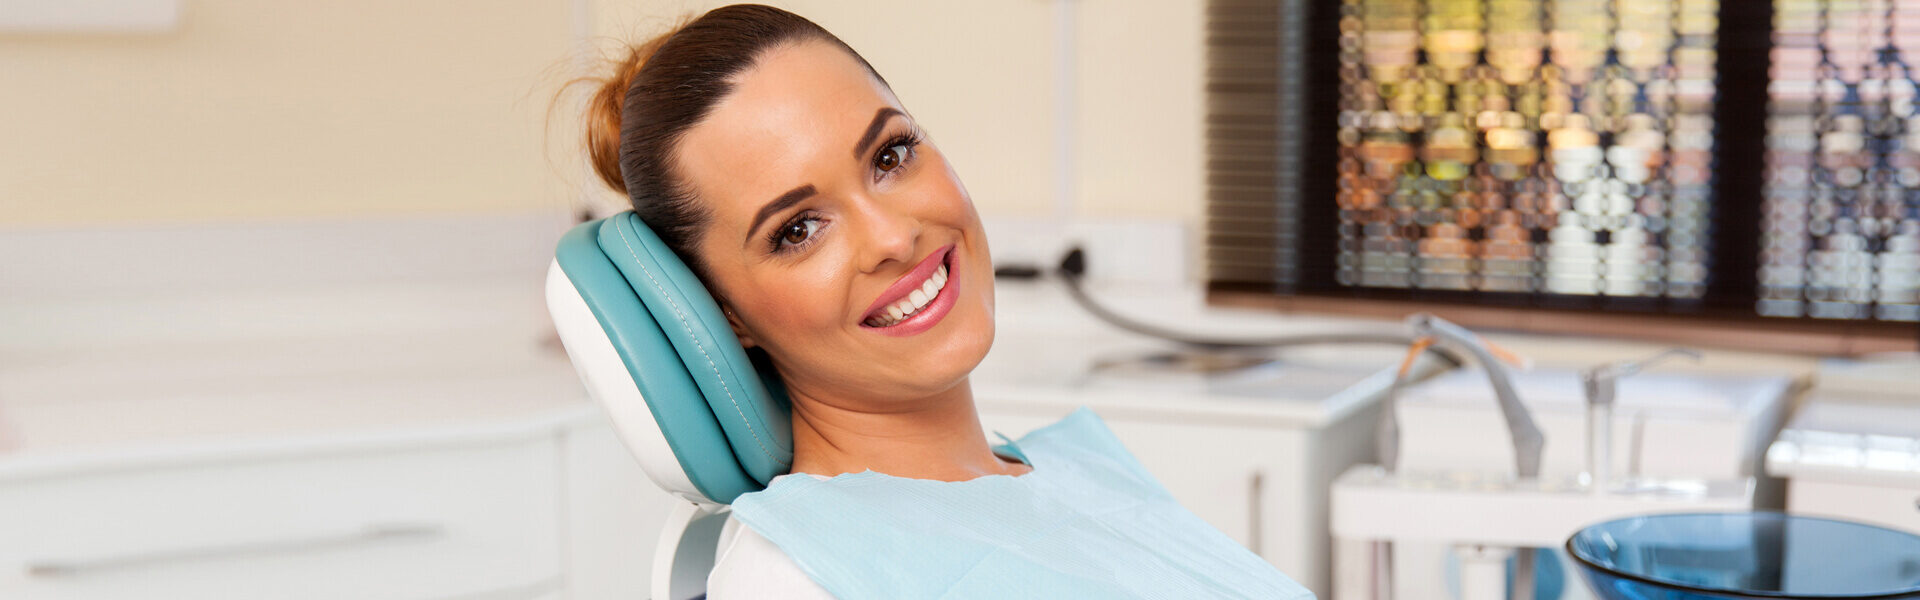 Dental Crowns in Lexington, MA